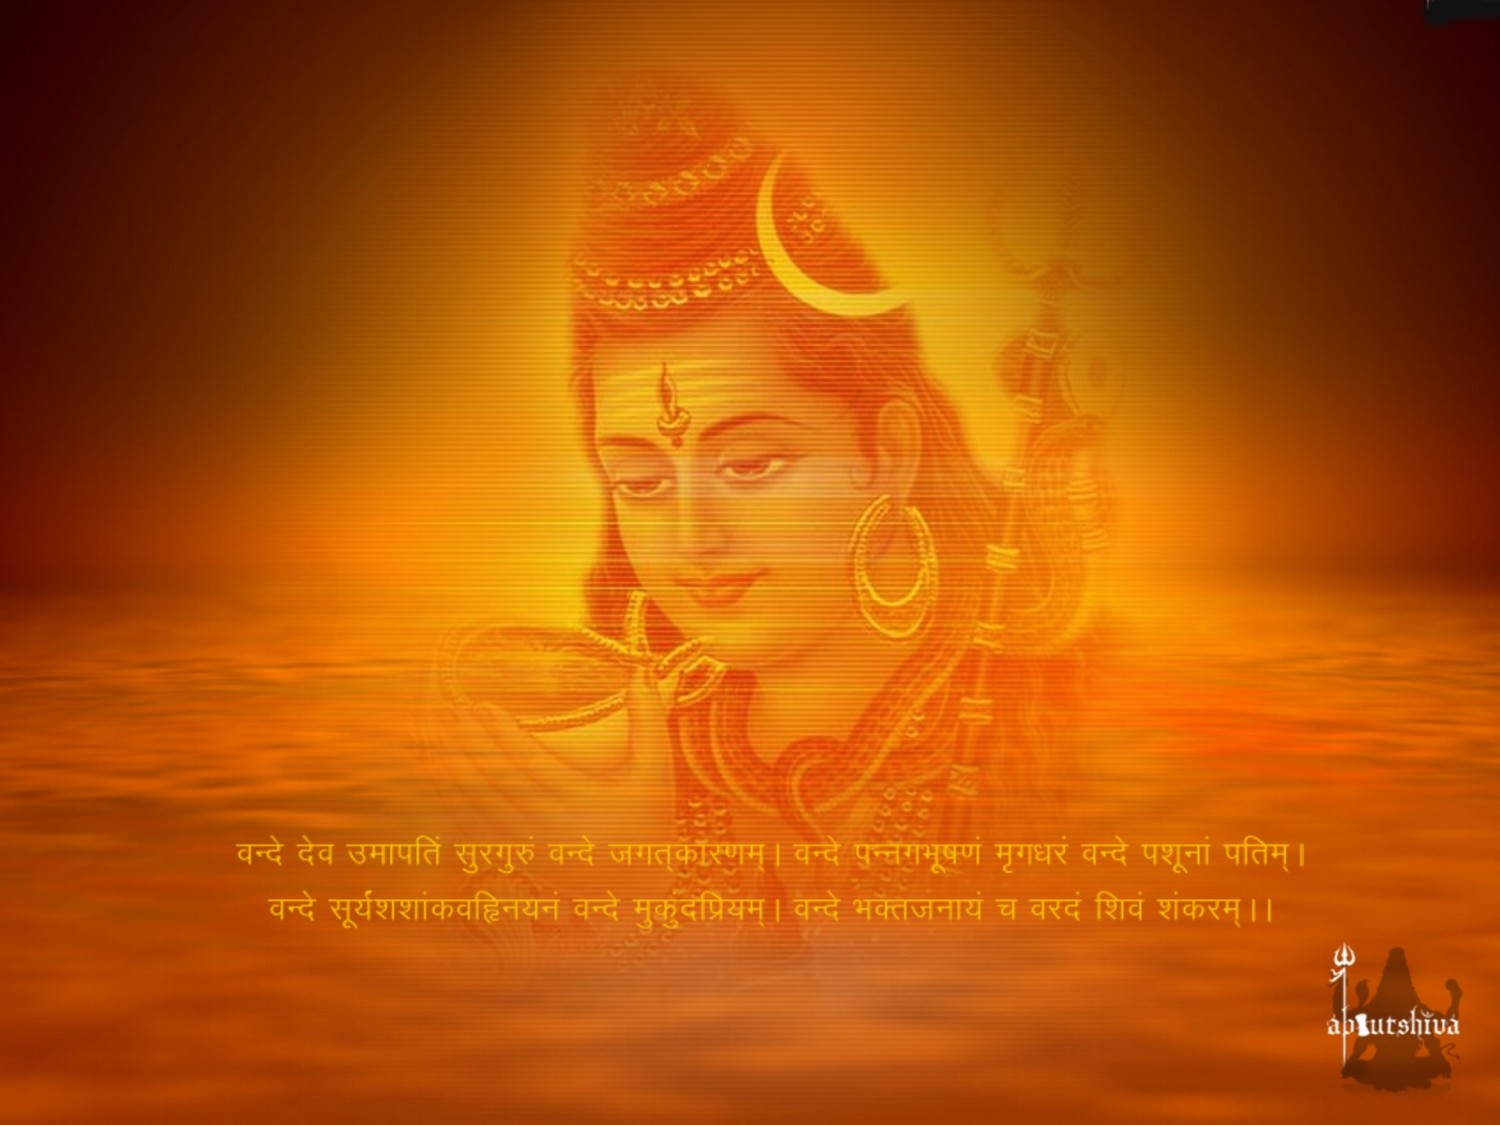 lord shri shiva shankar ji 10 jai mahadev on rediff pages